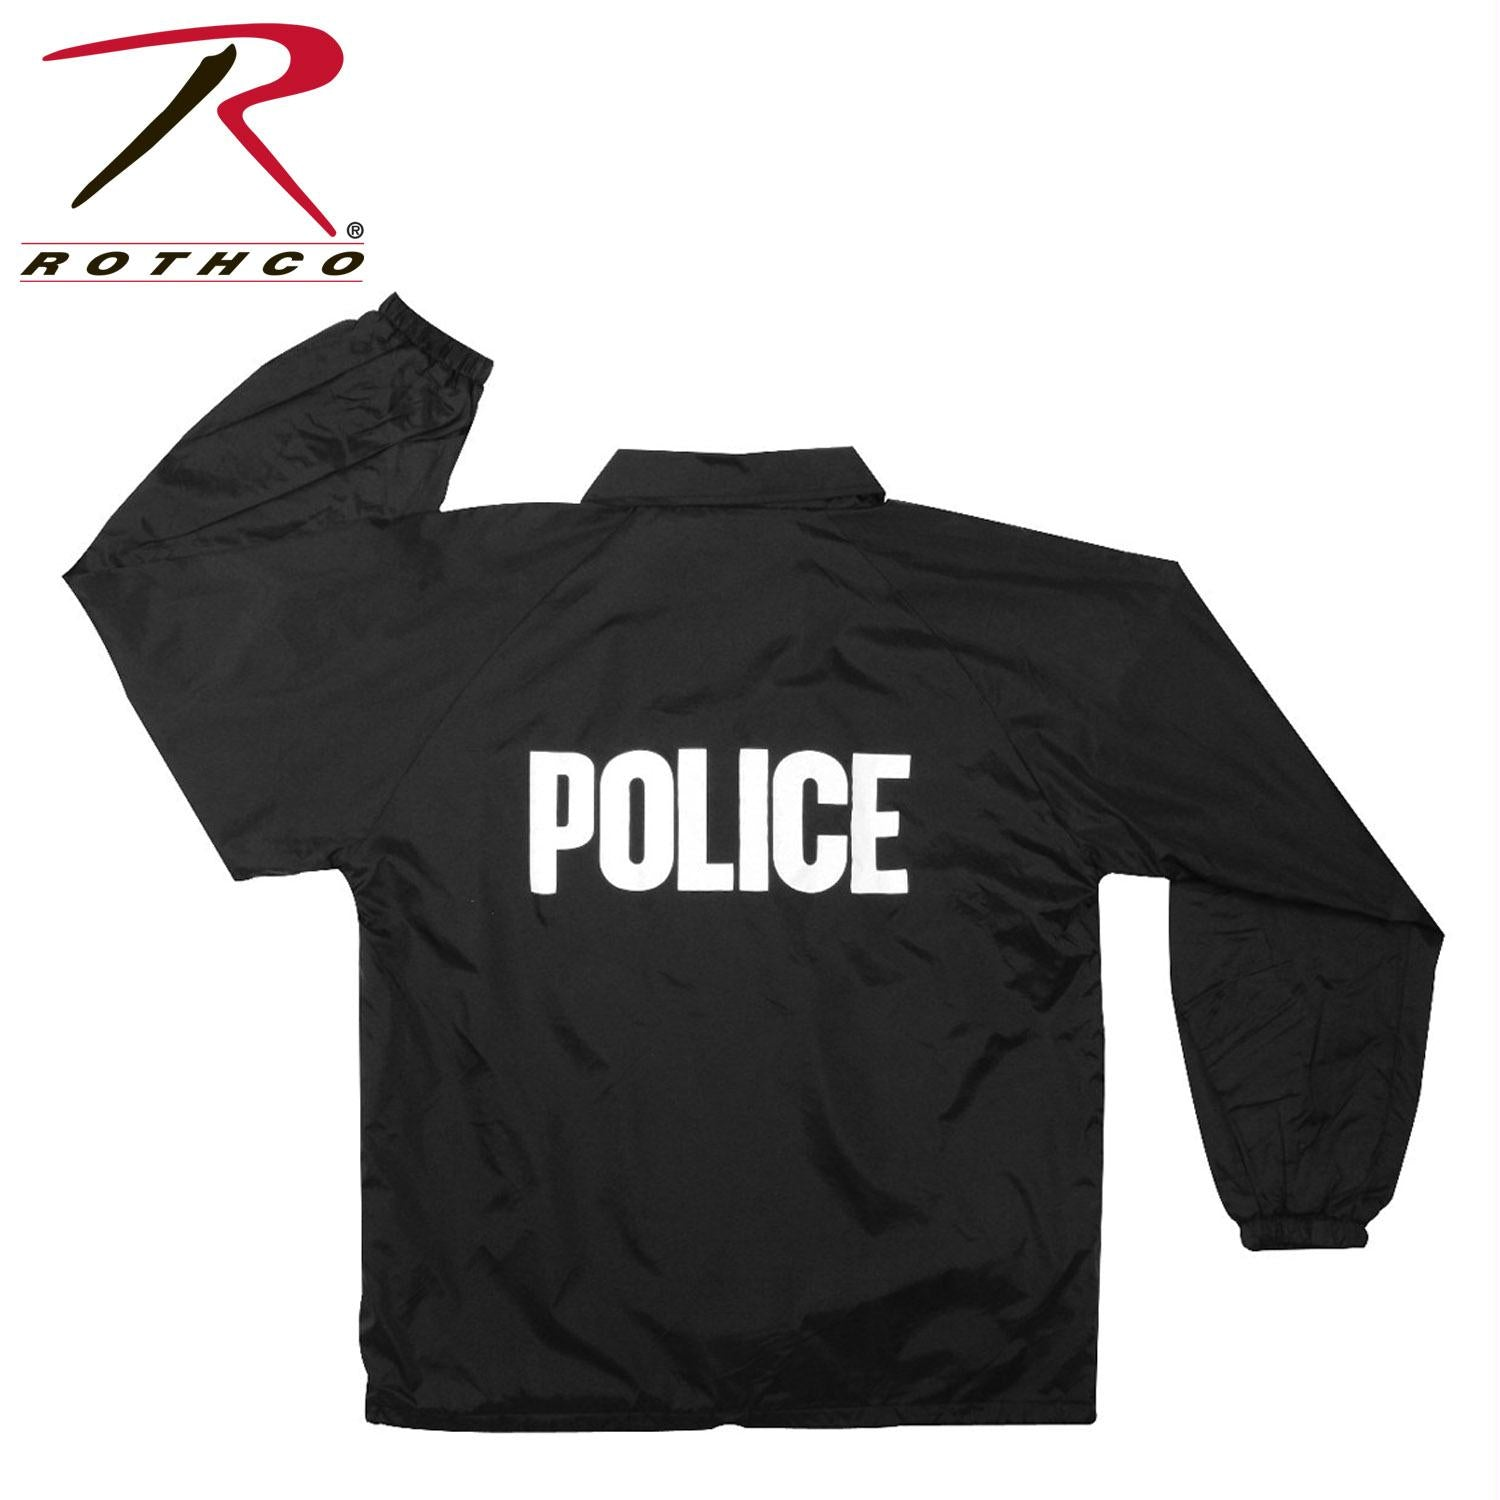 Rothco Lined Coaches Police Jacket - XL